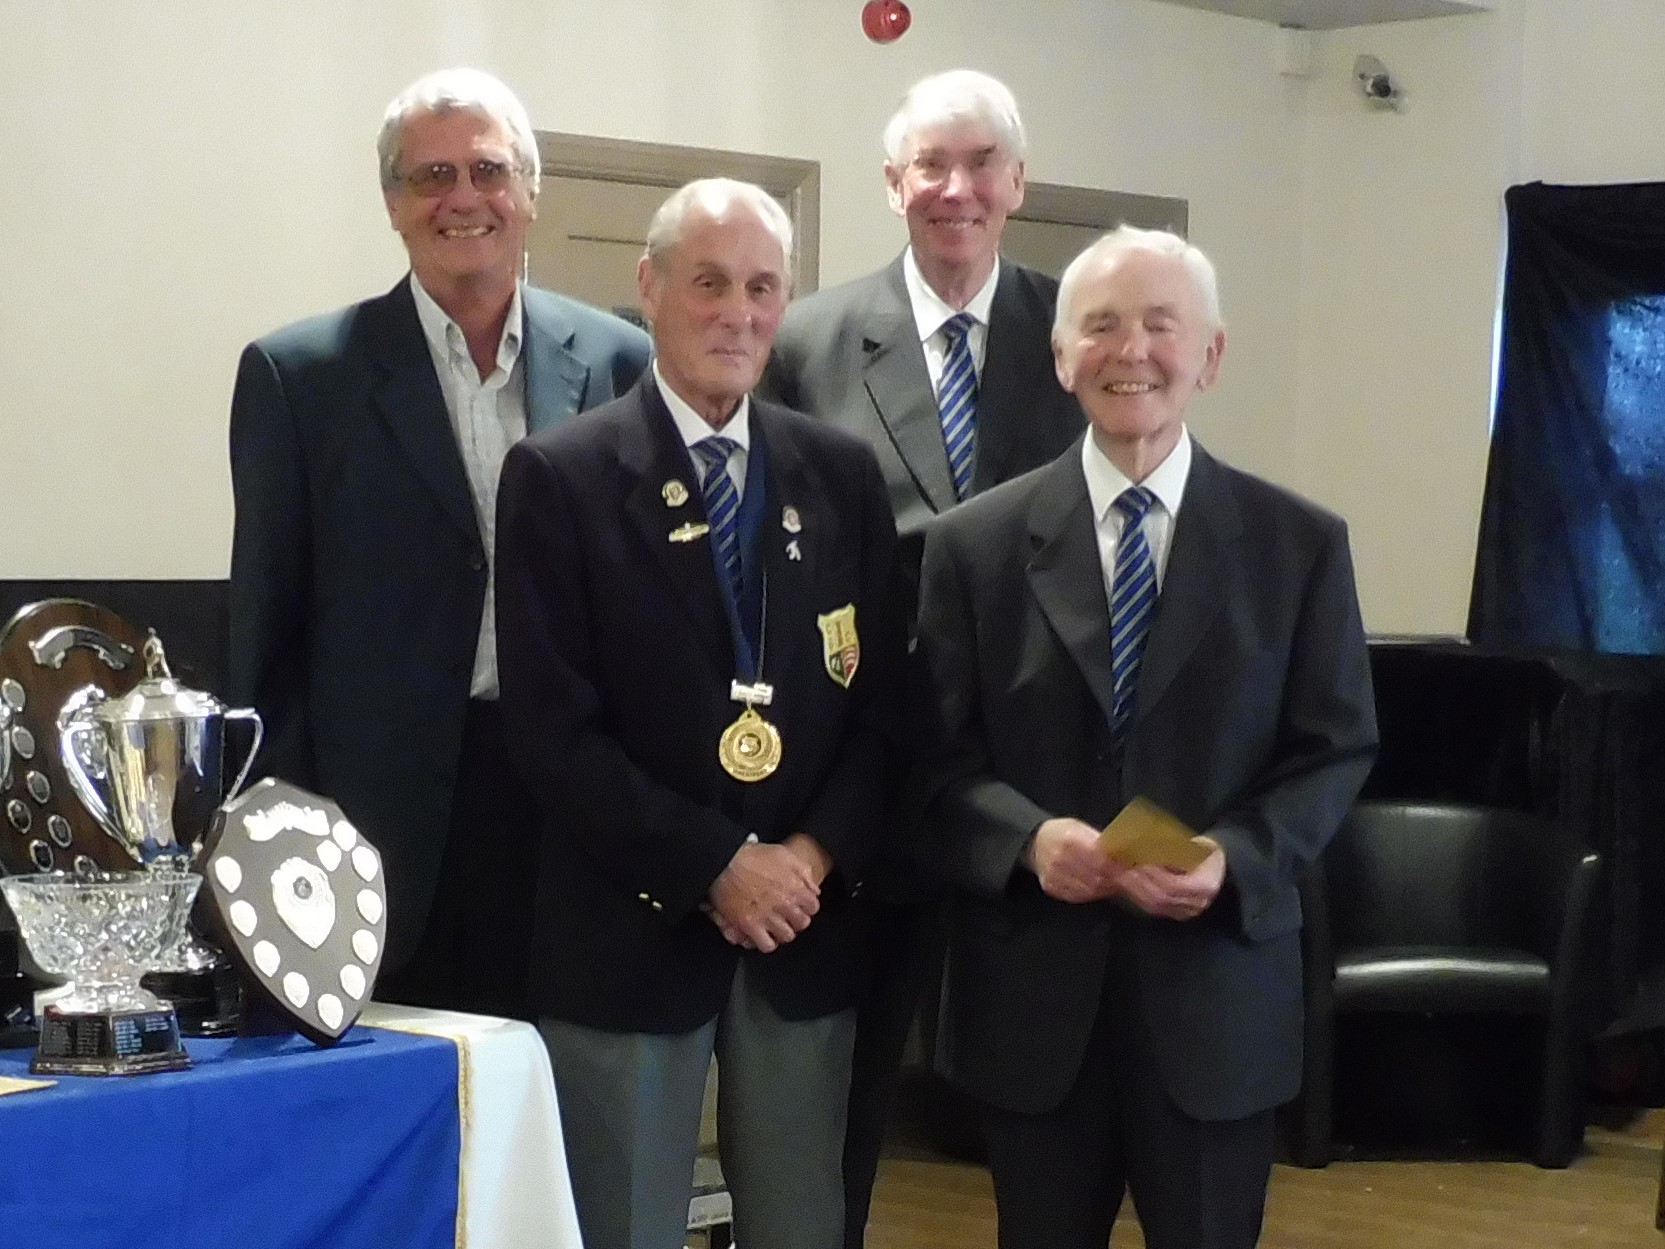 Cleanaway Triples Winners - Peter Humm, Bob Pashley and Les Roy